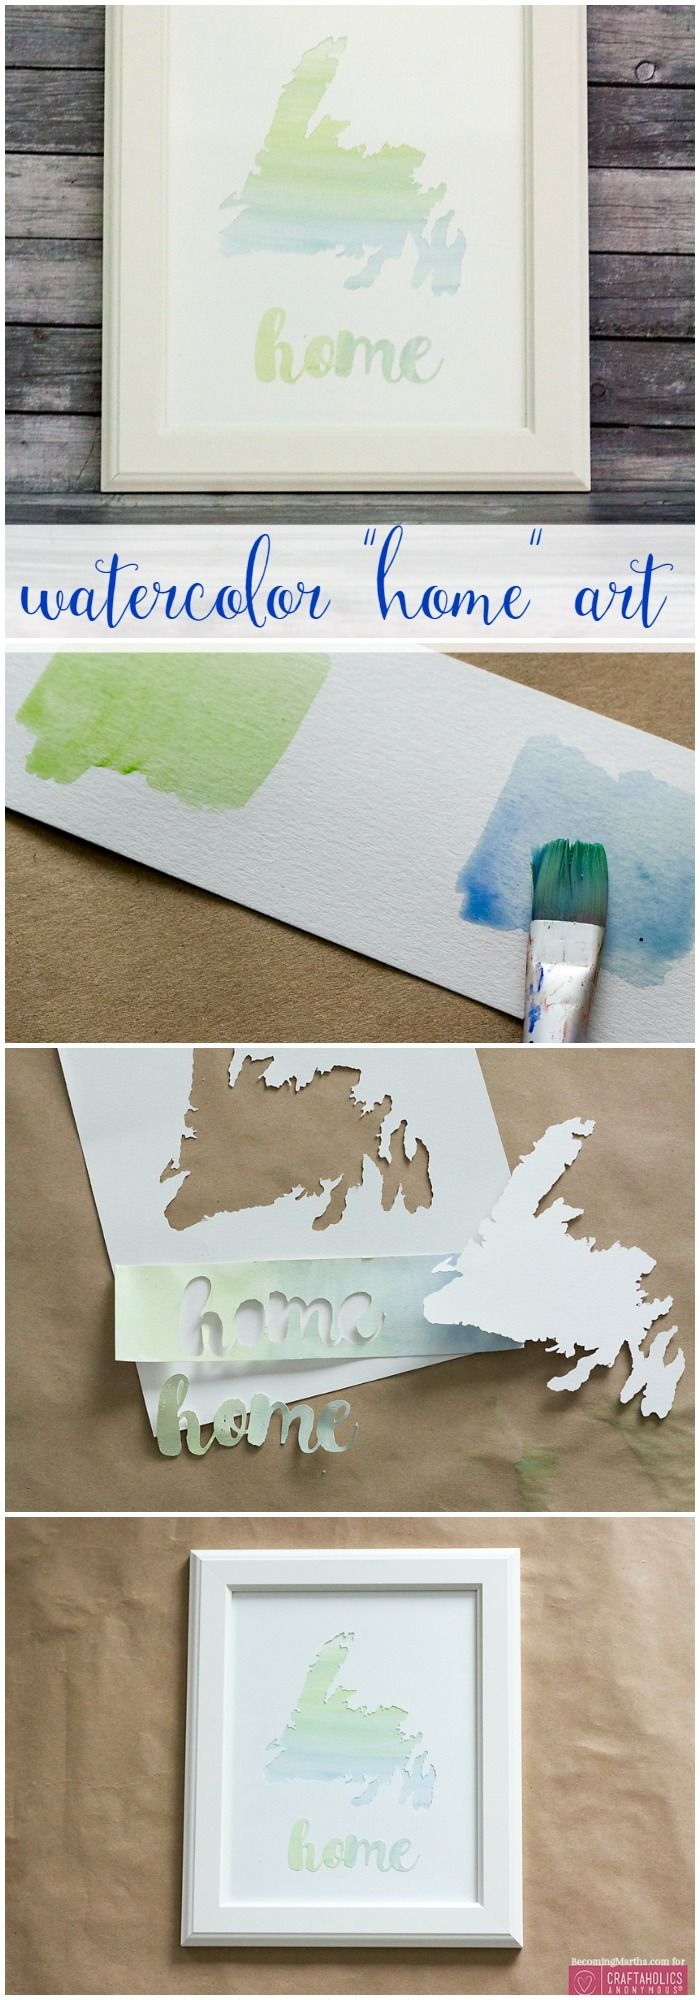 Best 25+ Simple watercolor ideas on Pinterest